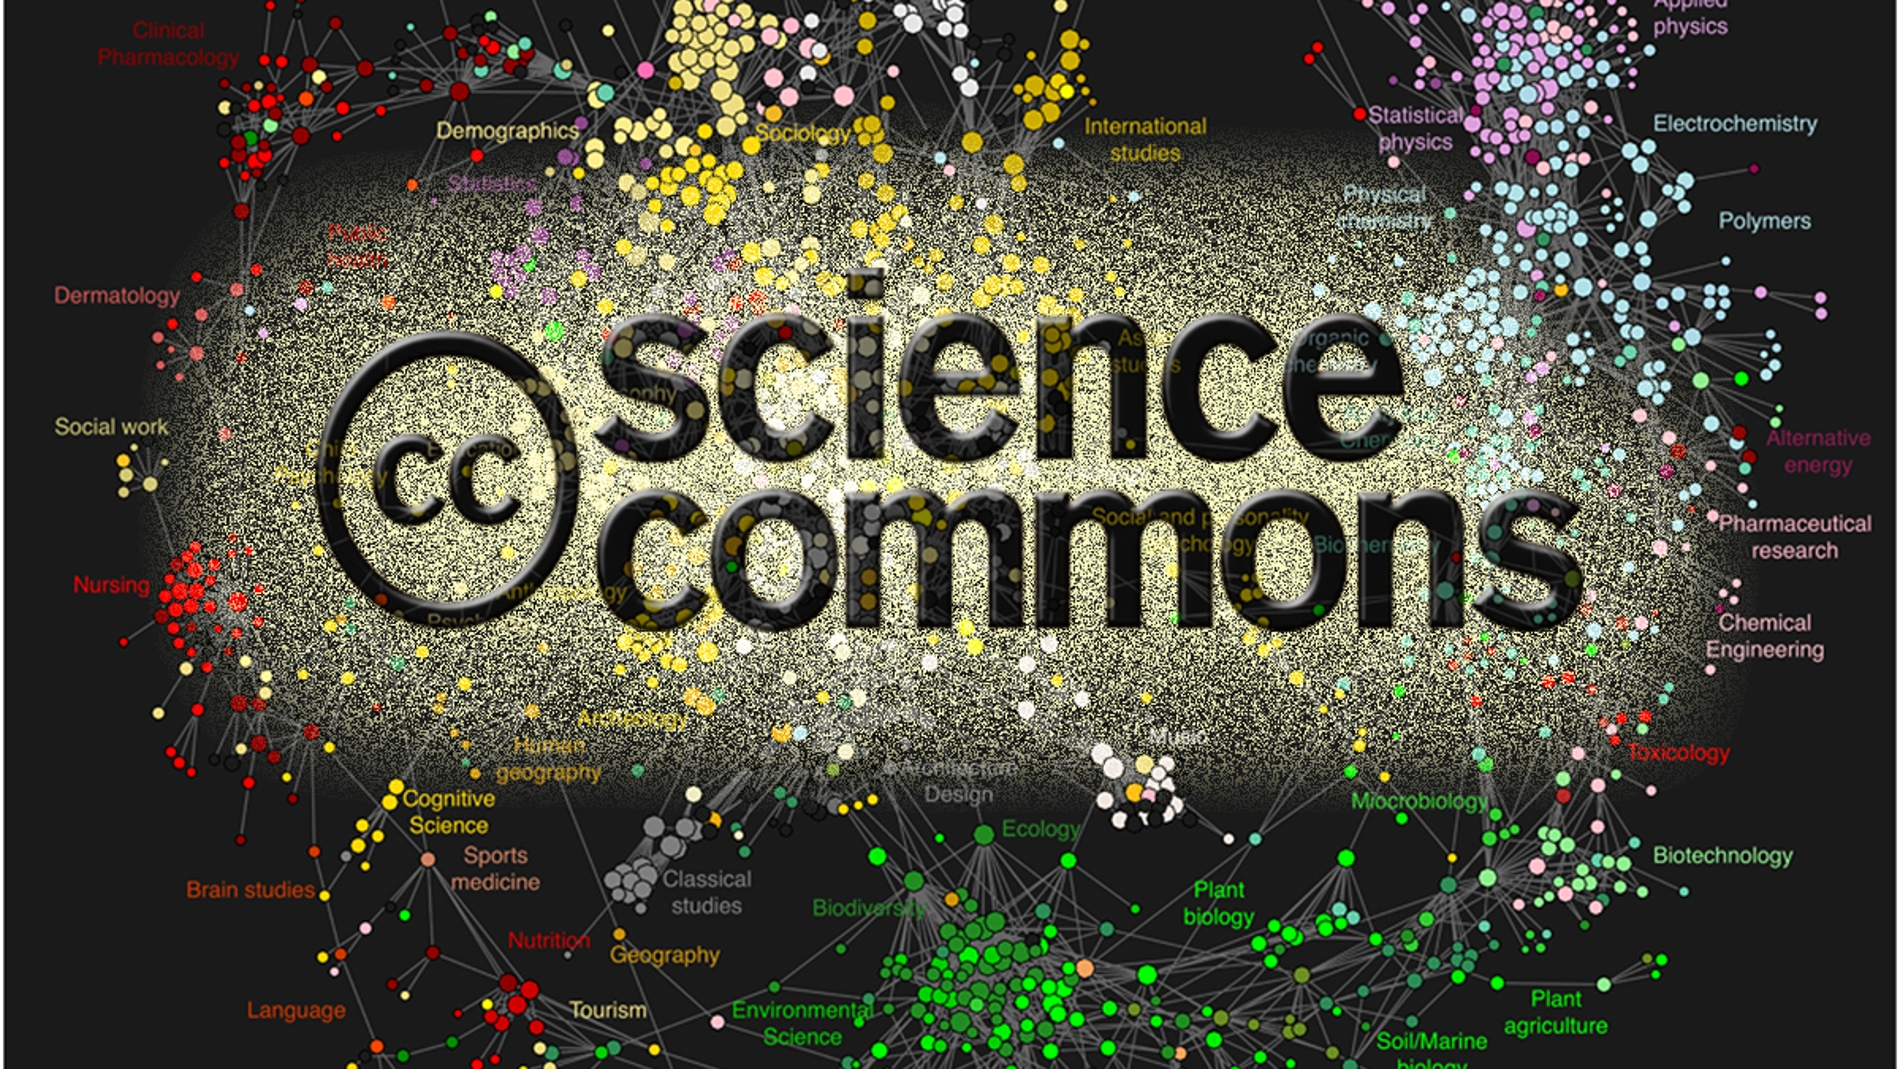 Science Commons